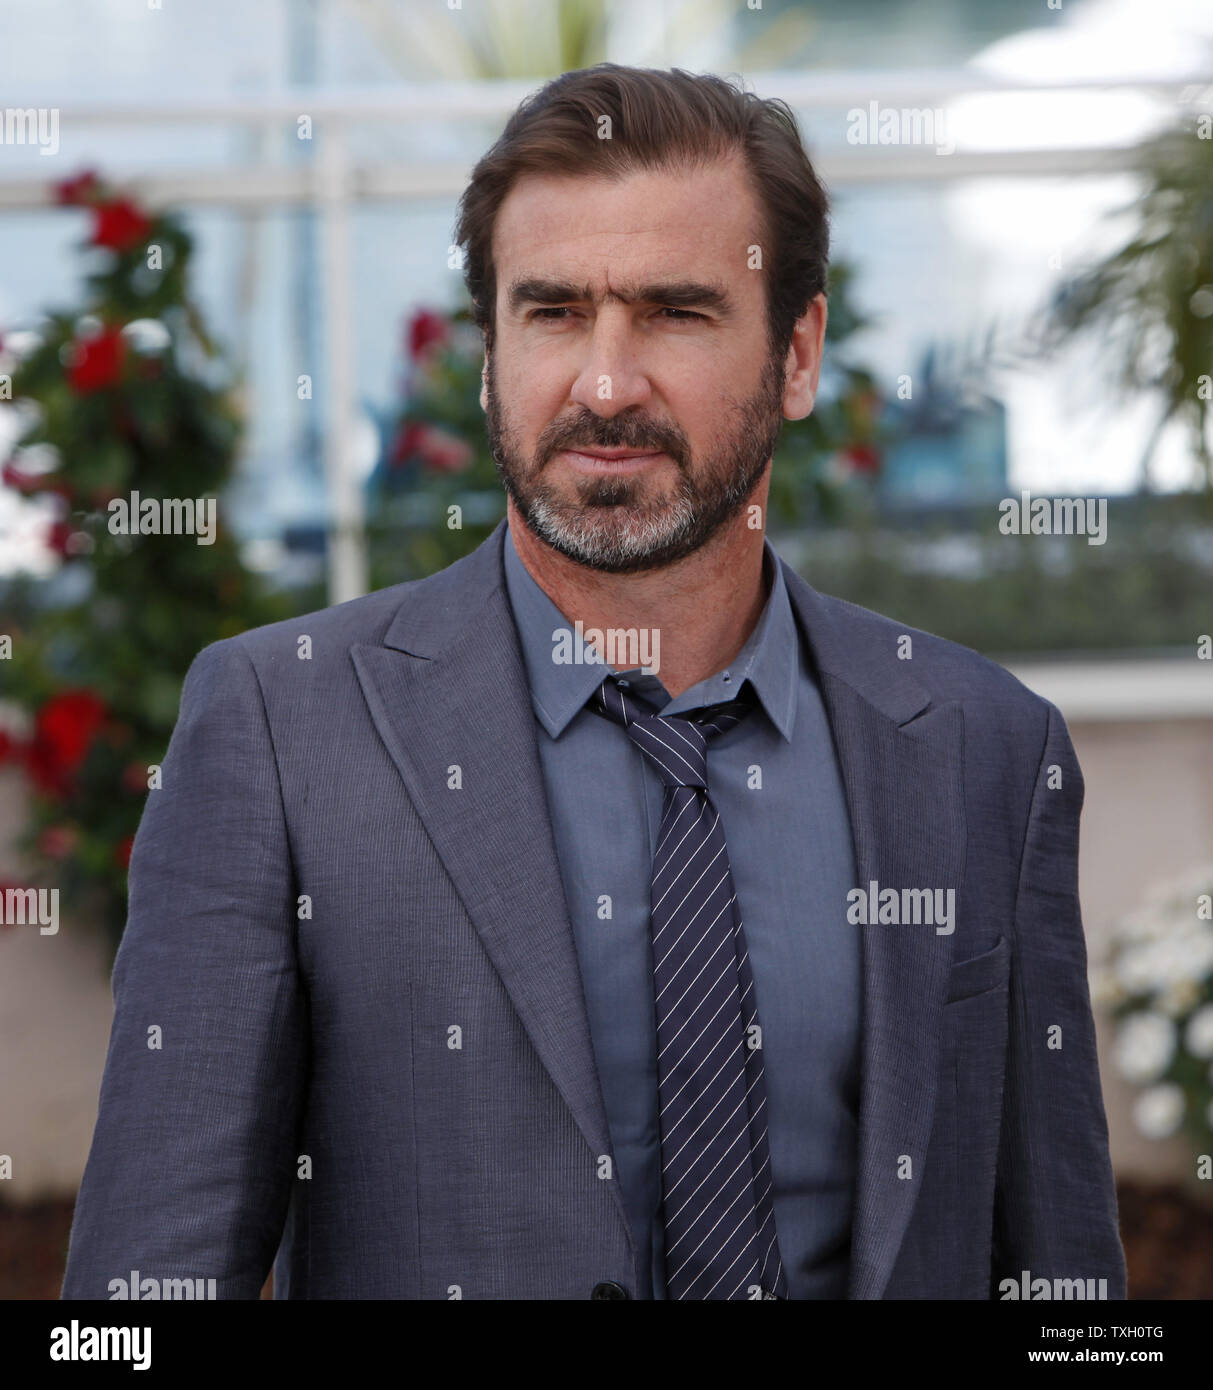 The family film will see former manchester united legend cantona playing 'eric', a former football star and now coach for a chinese league team,. Actor Eric Cantona Arrives At A Photocall For The Film Looking For Eric At The 62nd Annual Cannes Film Festival In Cannes France On May 18 2009 Upi Photo David Silpa Stock Photo